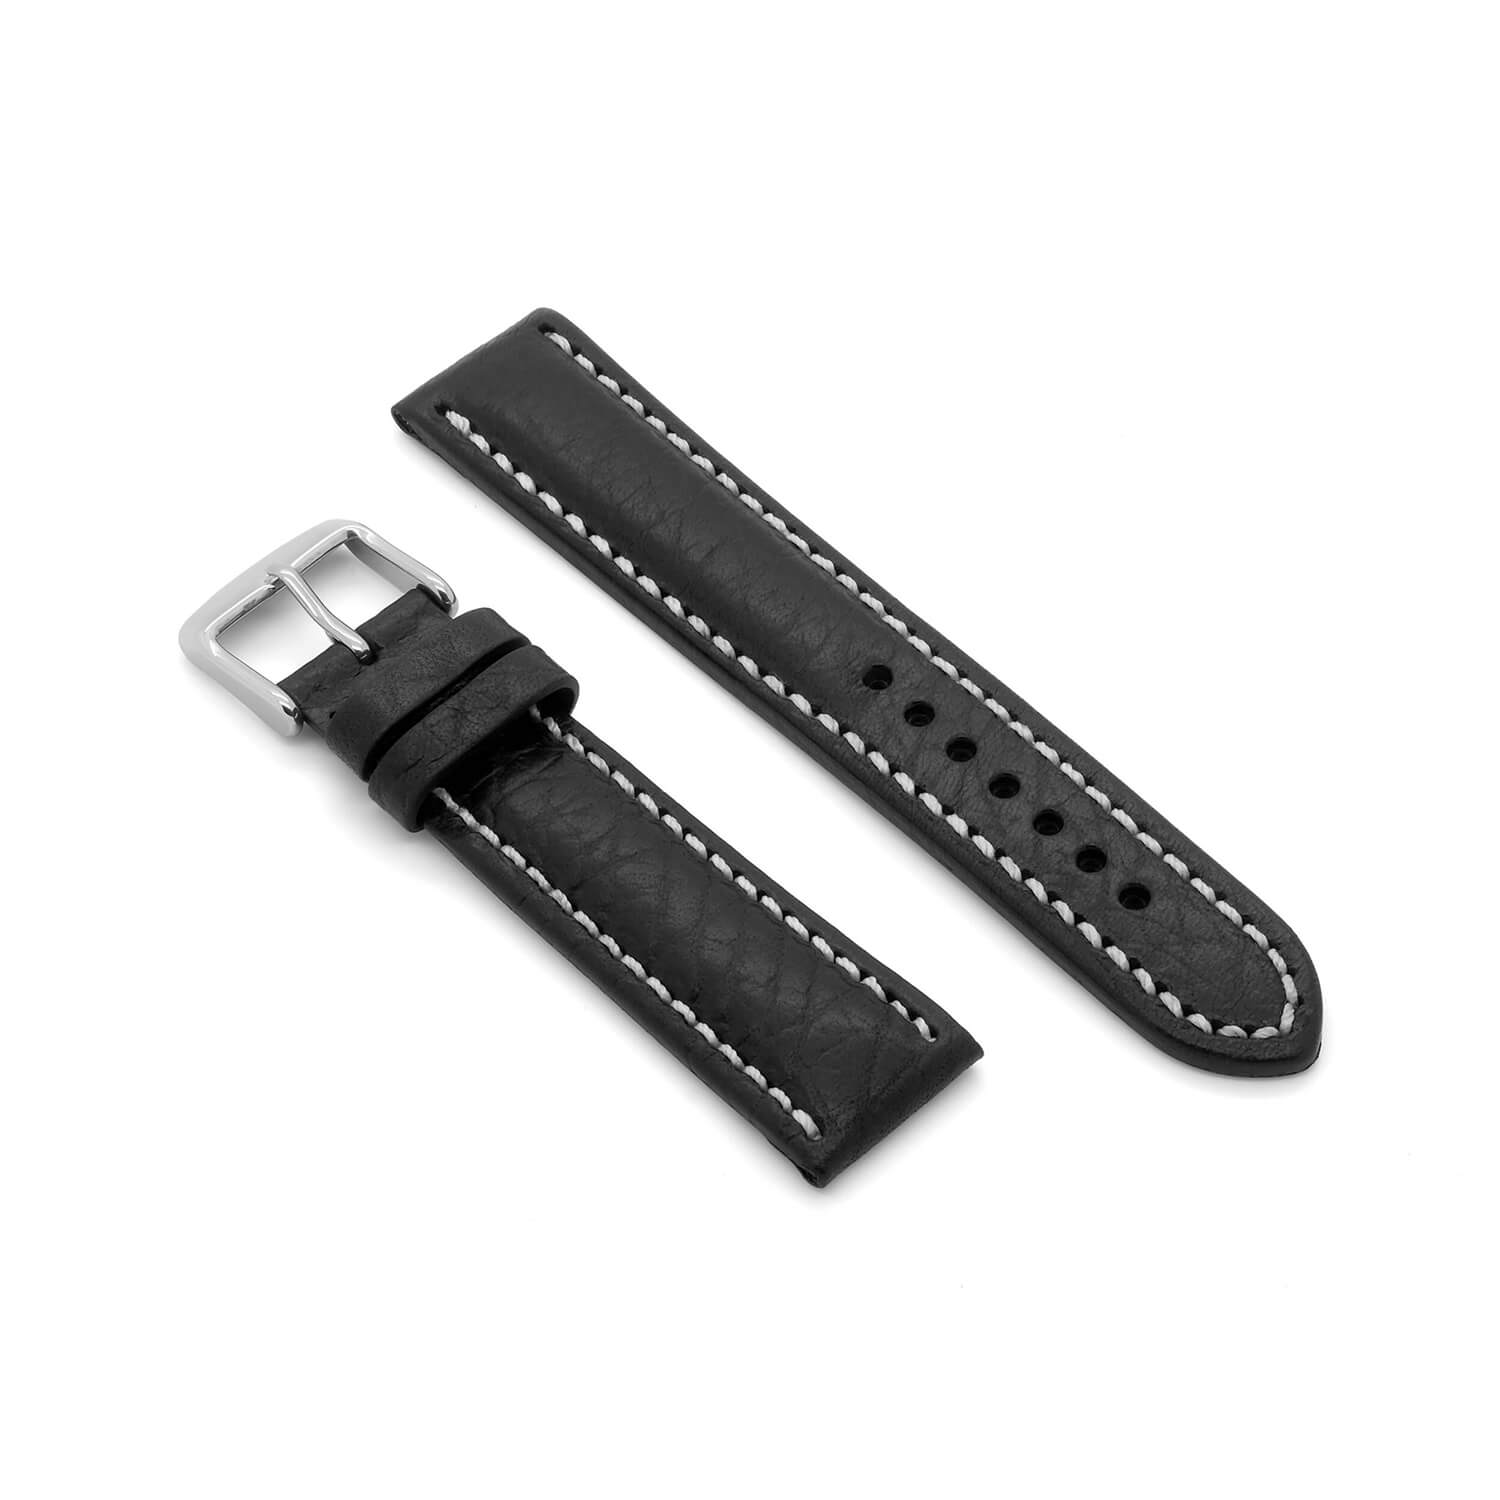 'Brooklands MKII' Deep Padded Leather Watch Strap (Black)